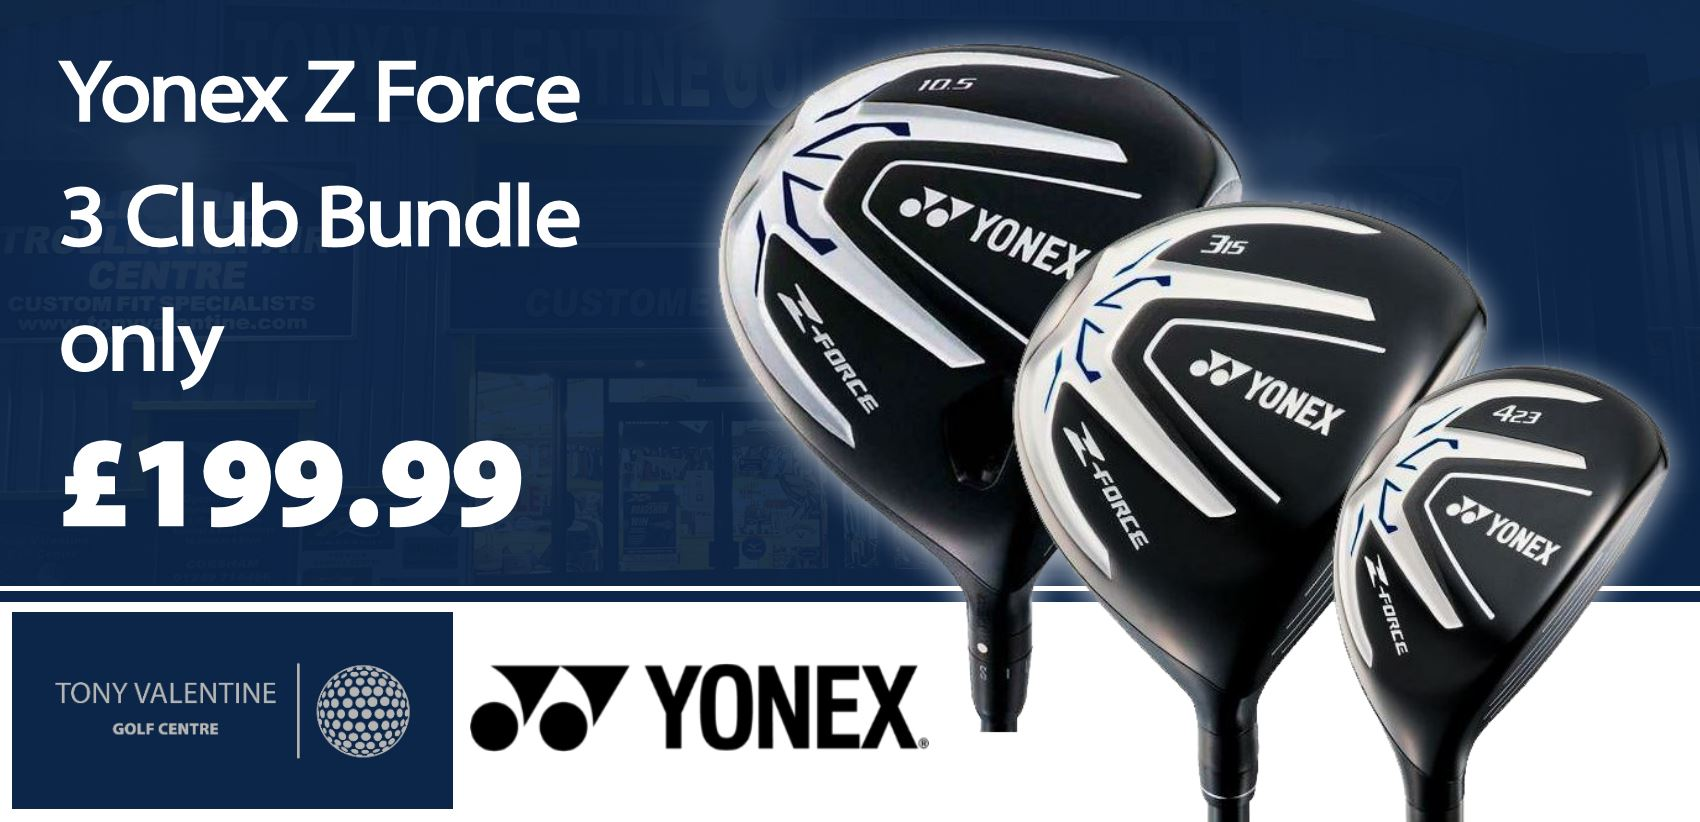 Yonex Z Force 3 Club Bundle